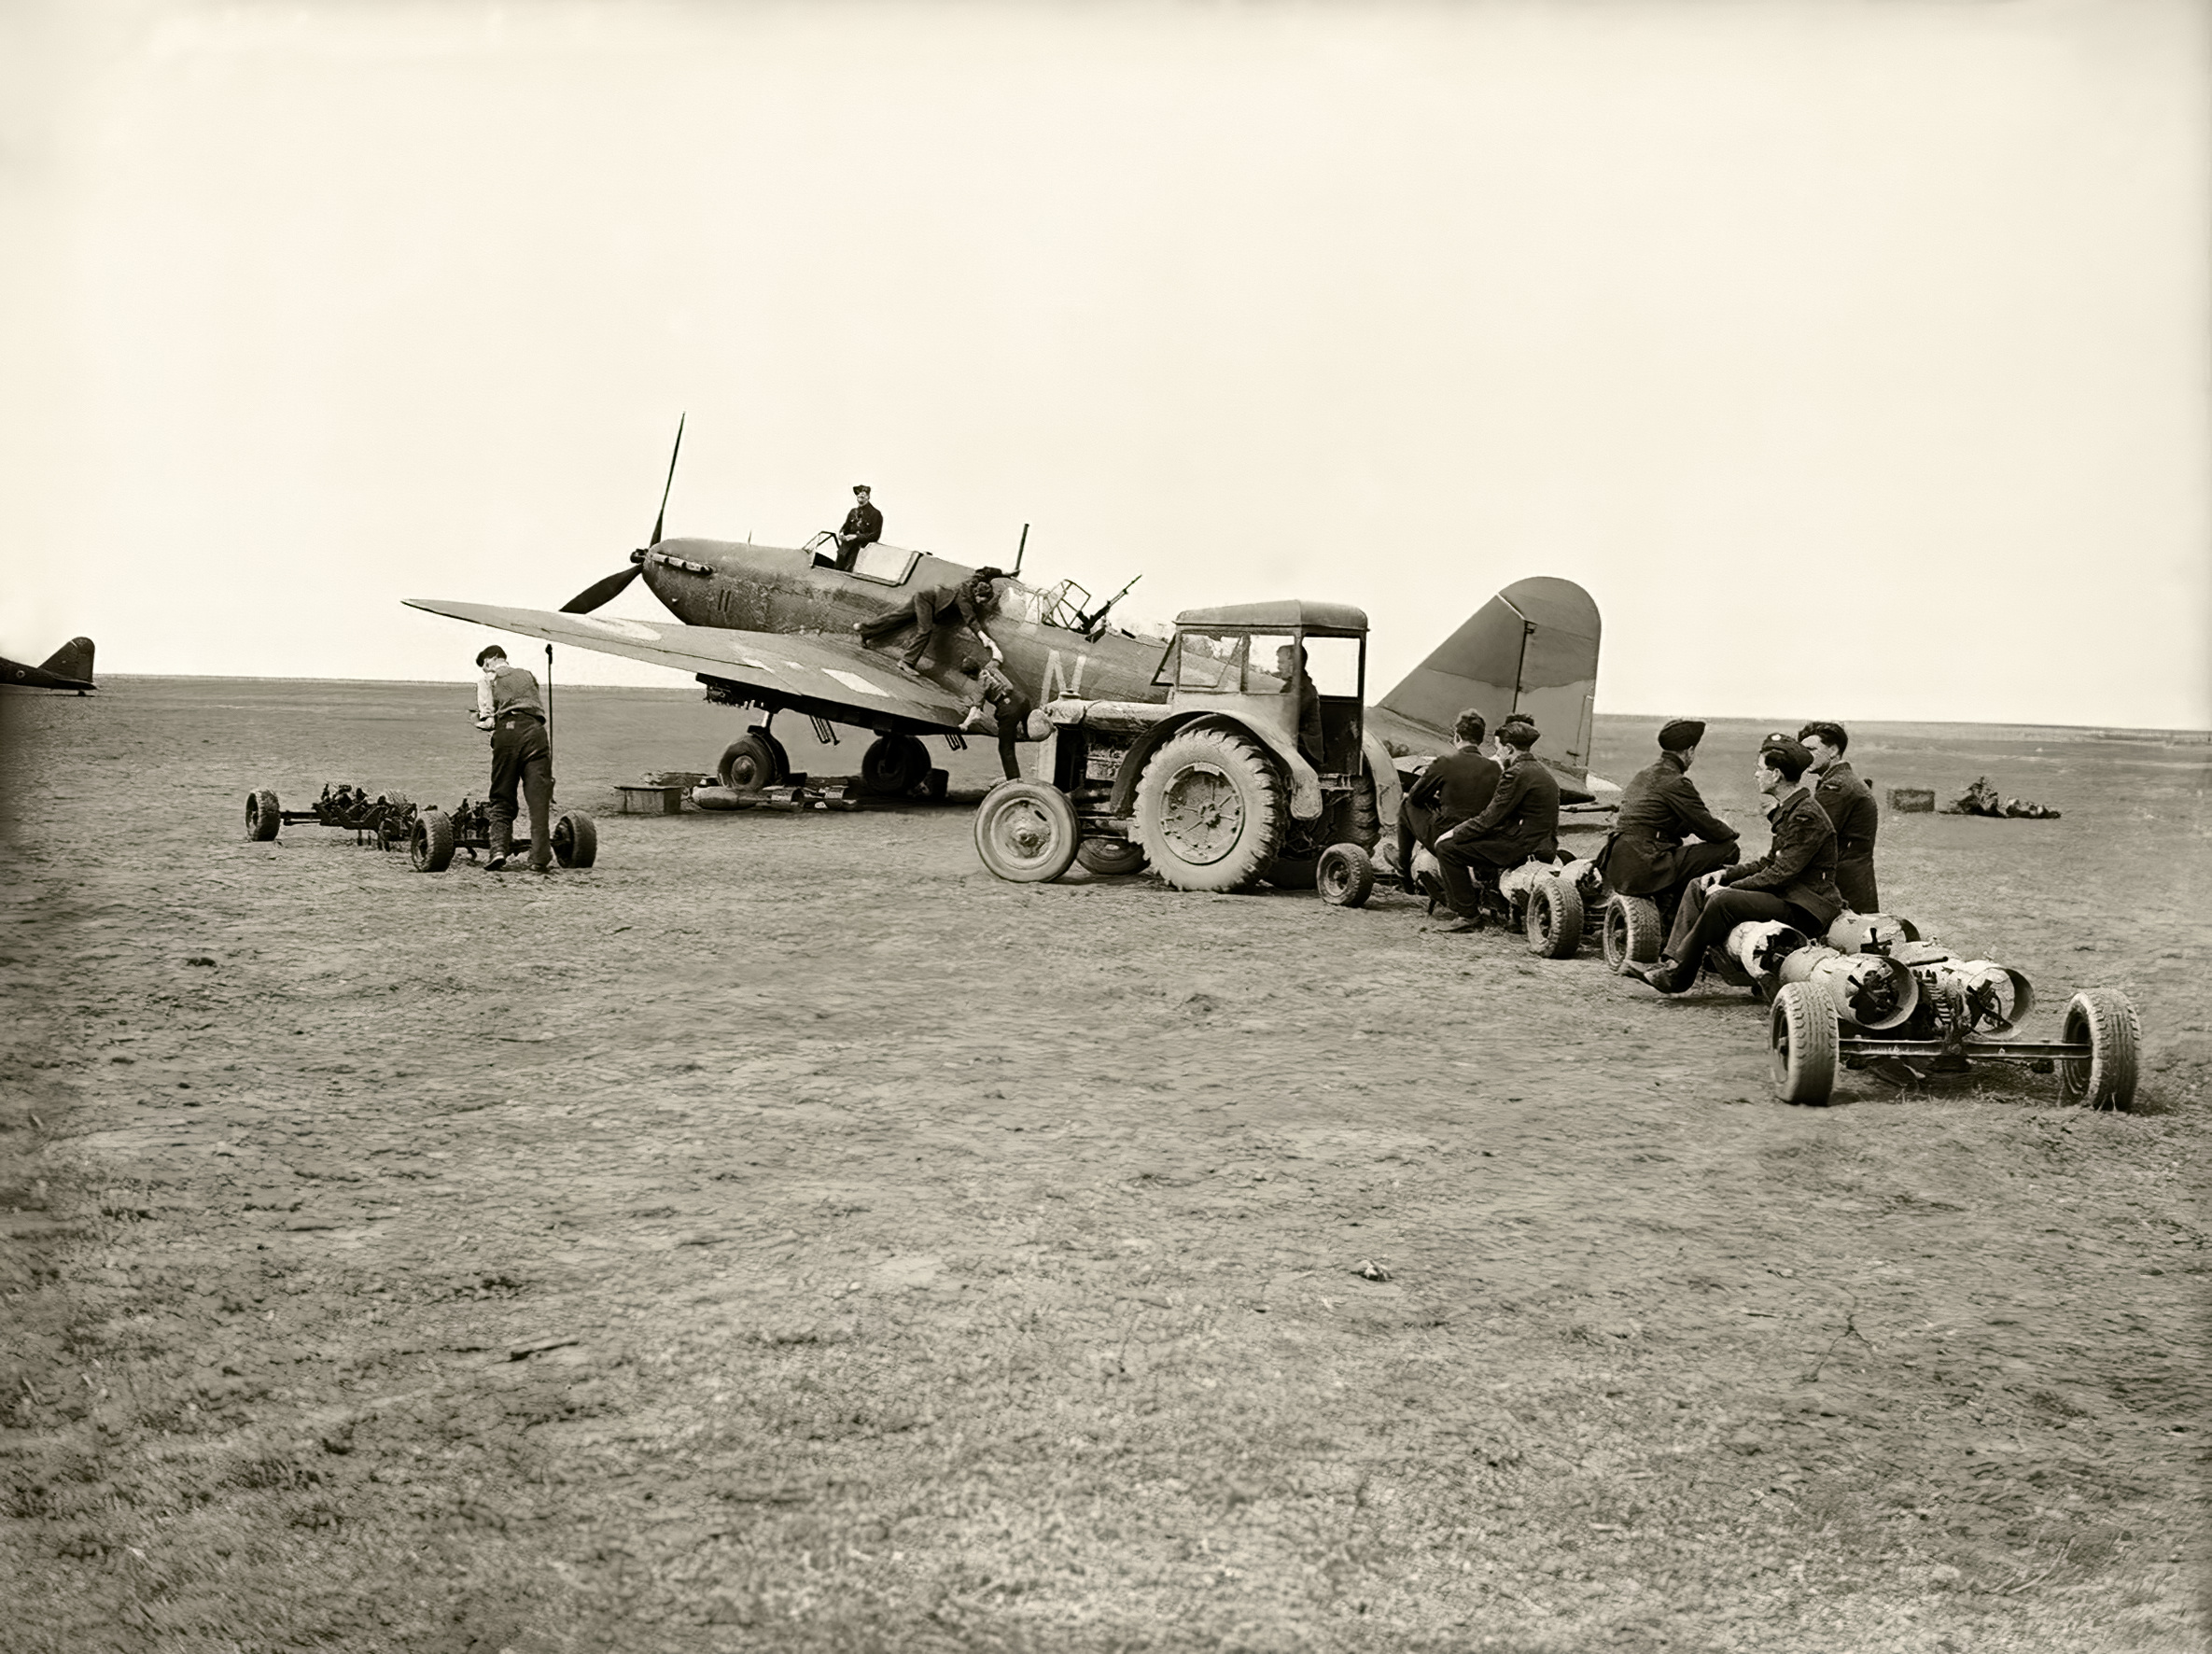 Fairey Battle being loaded at Betheniville airfield during battle of France May 1940 IWM C1071